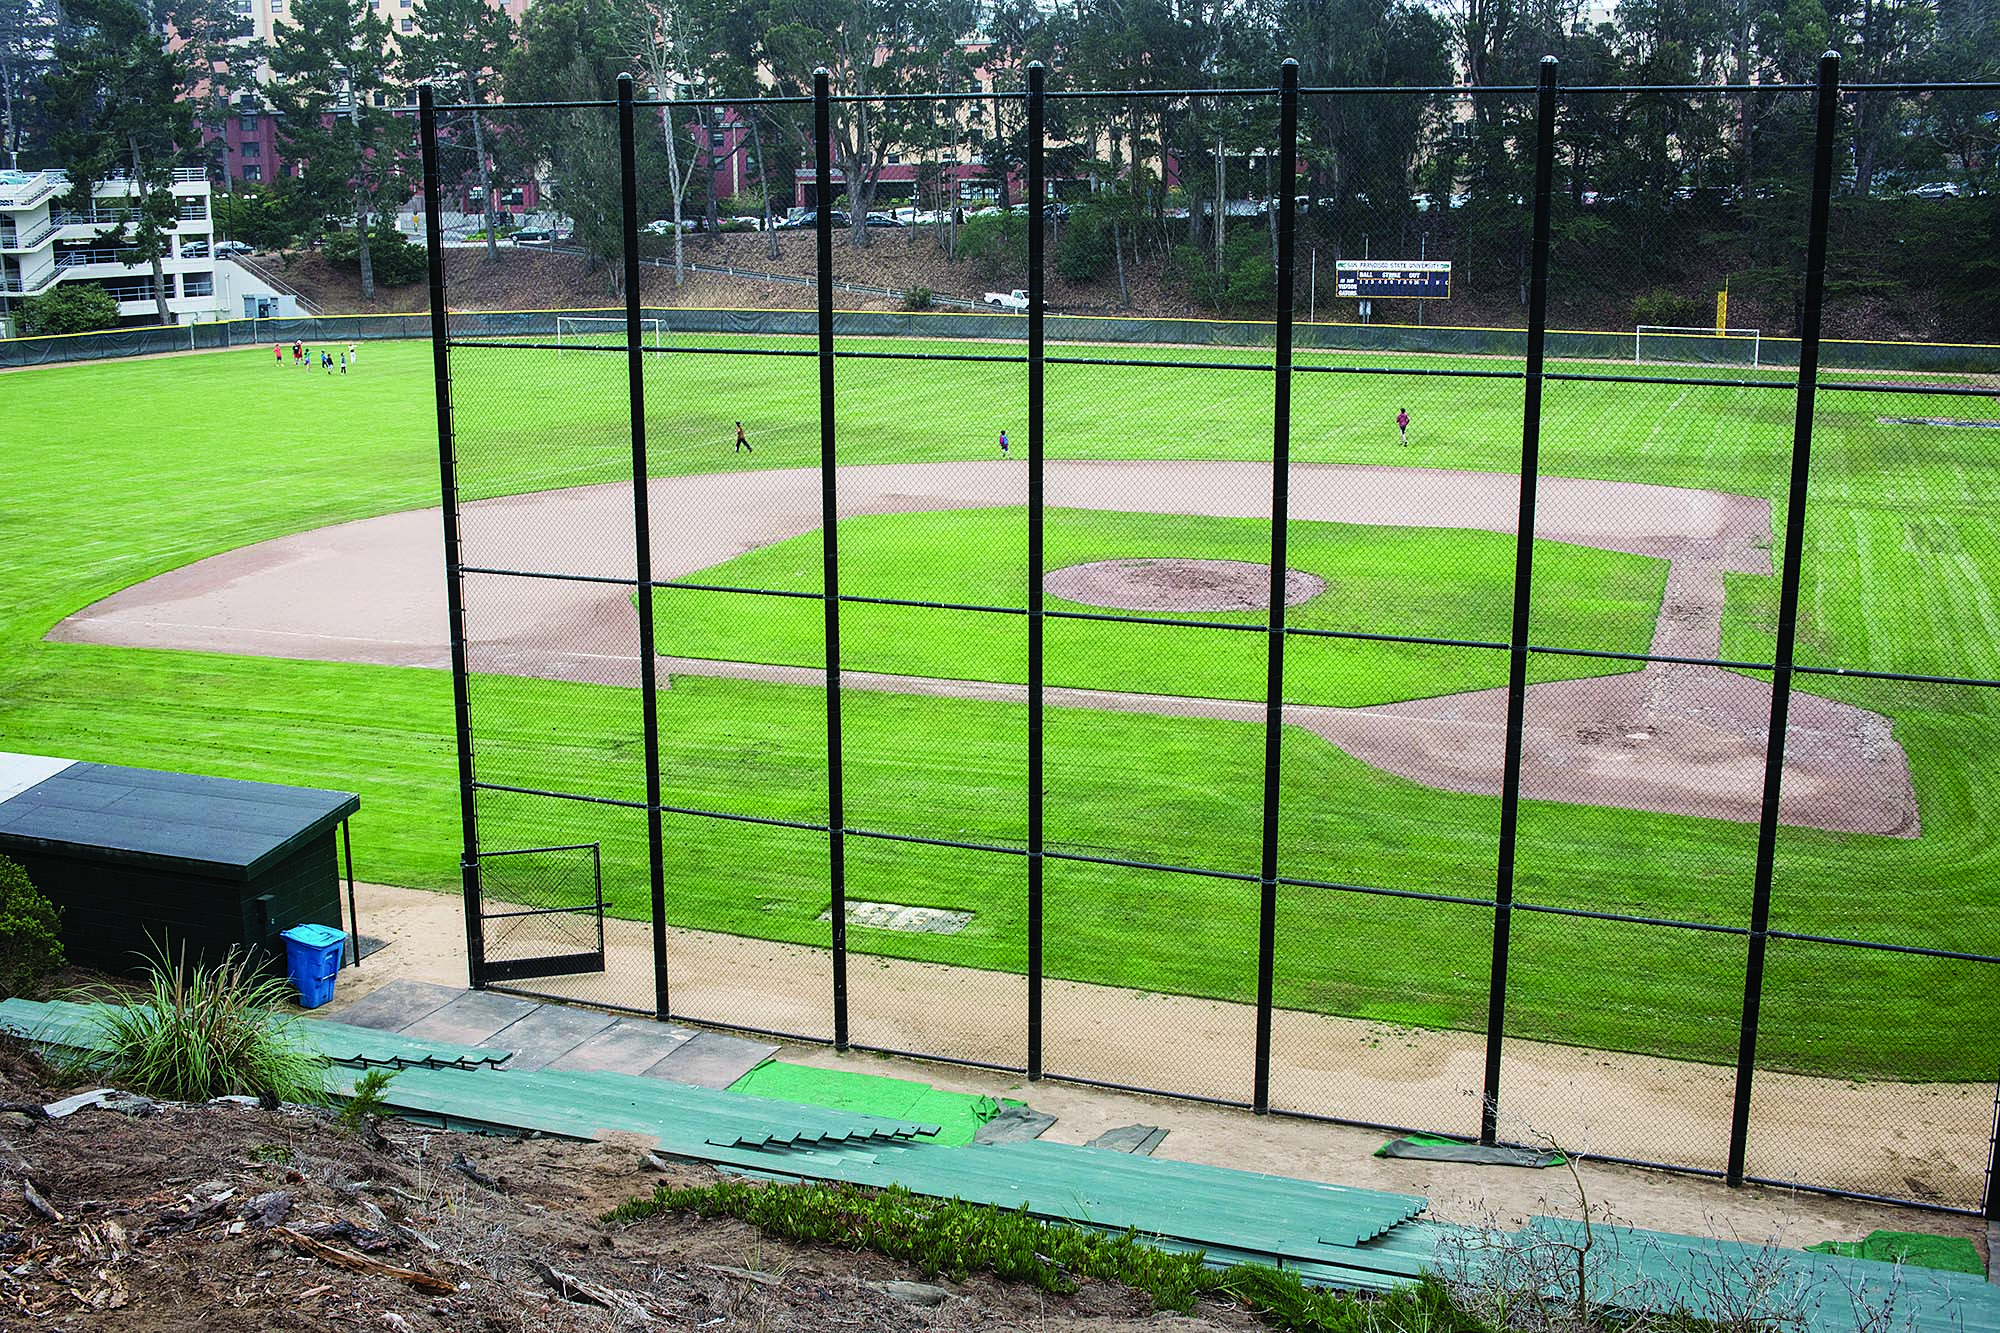 Maloney Field at San Francisco State University on Thursday, June 11, 2015 (Special to S.F. Examiner/Michael Ares)